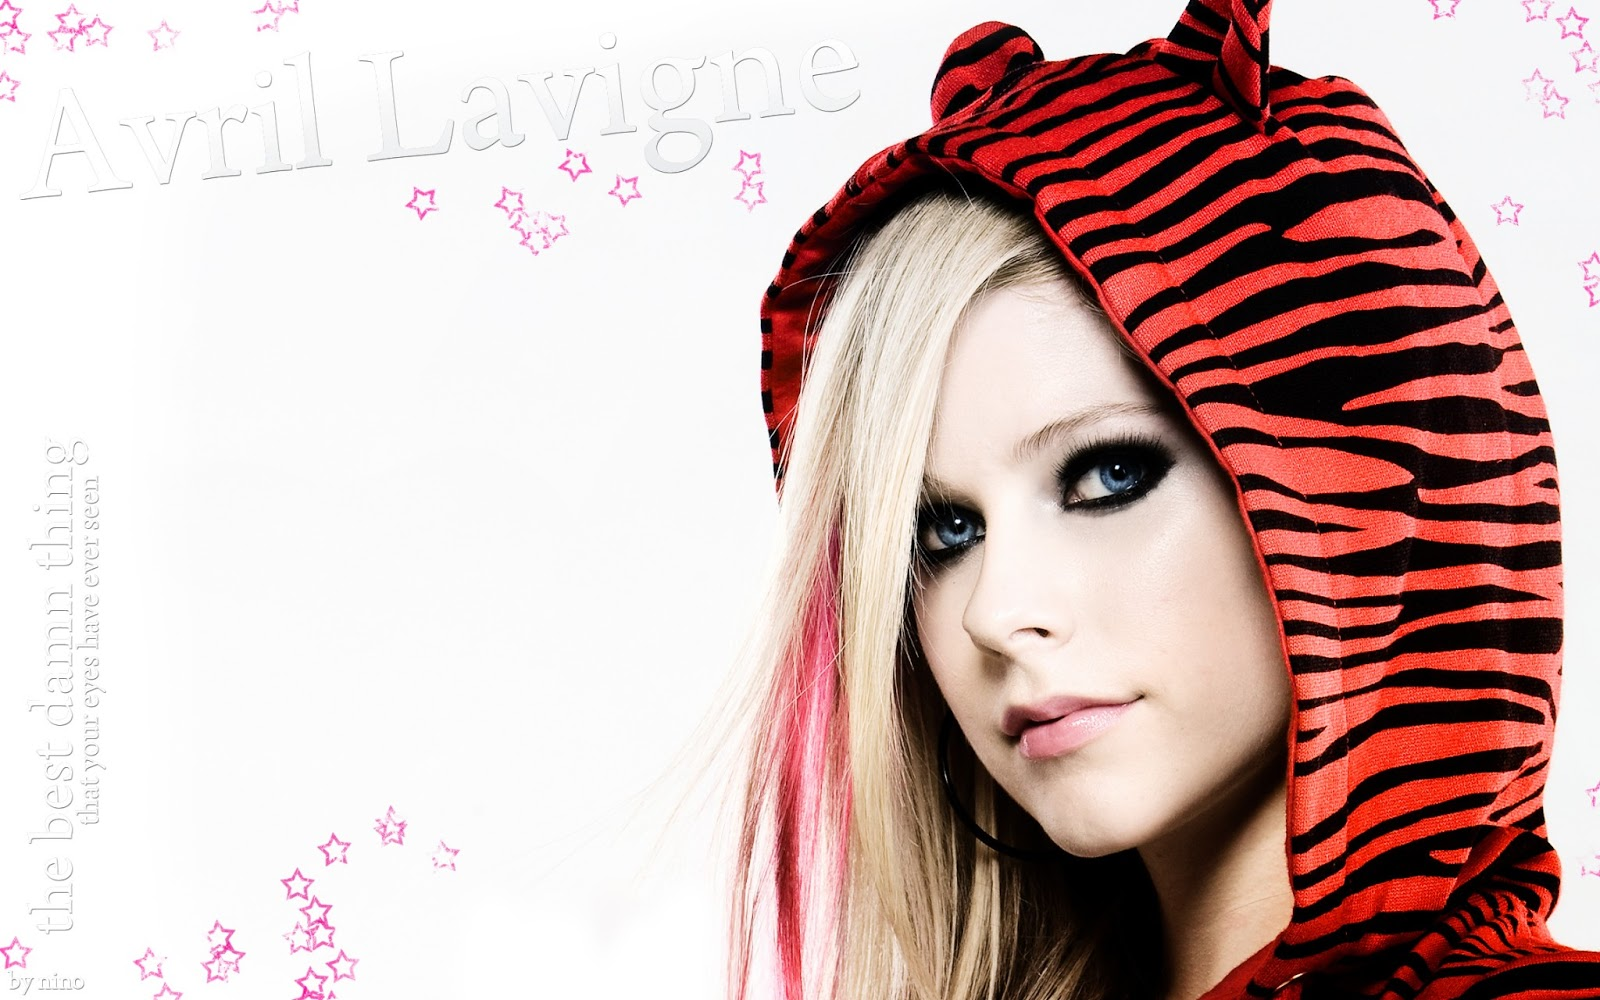 Avril lavigne cute wallpapers 2013 its all about wallpapers avril lavigne wallpaper voltagebd Image collections